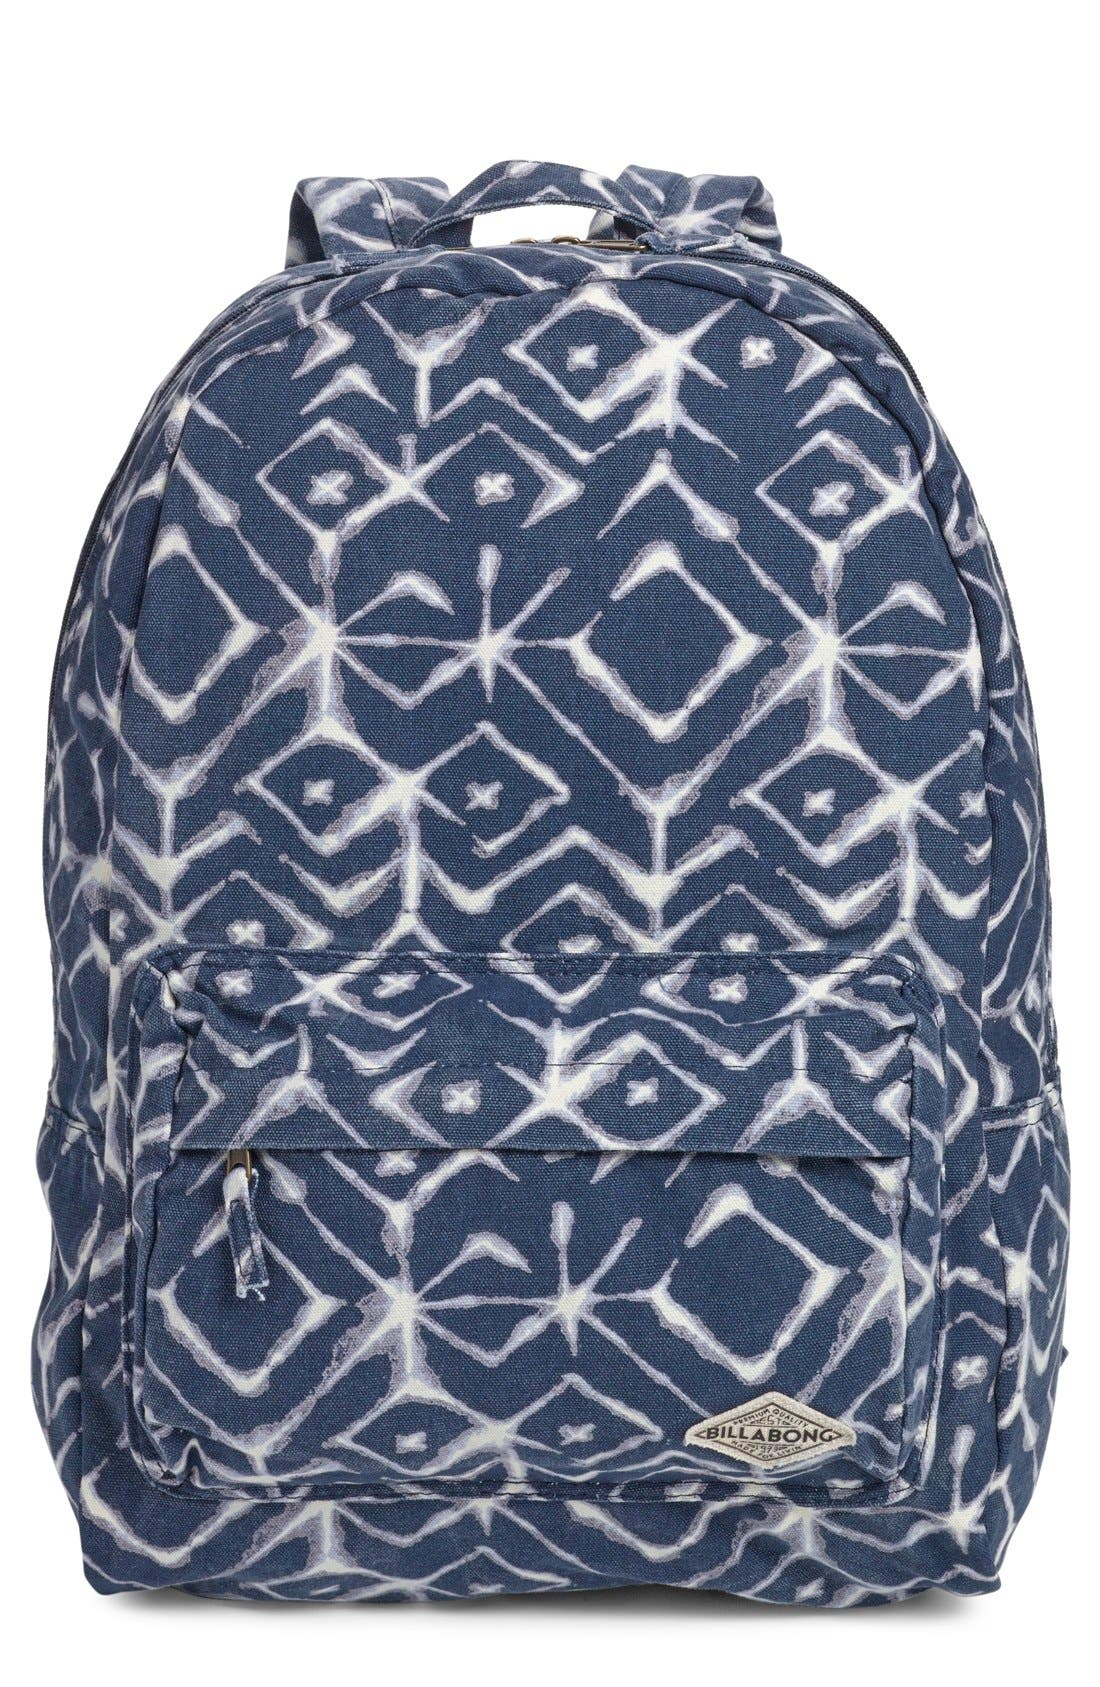 'Hand Over Love' Backpack,                             Main thumbnail 9, color,